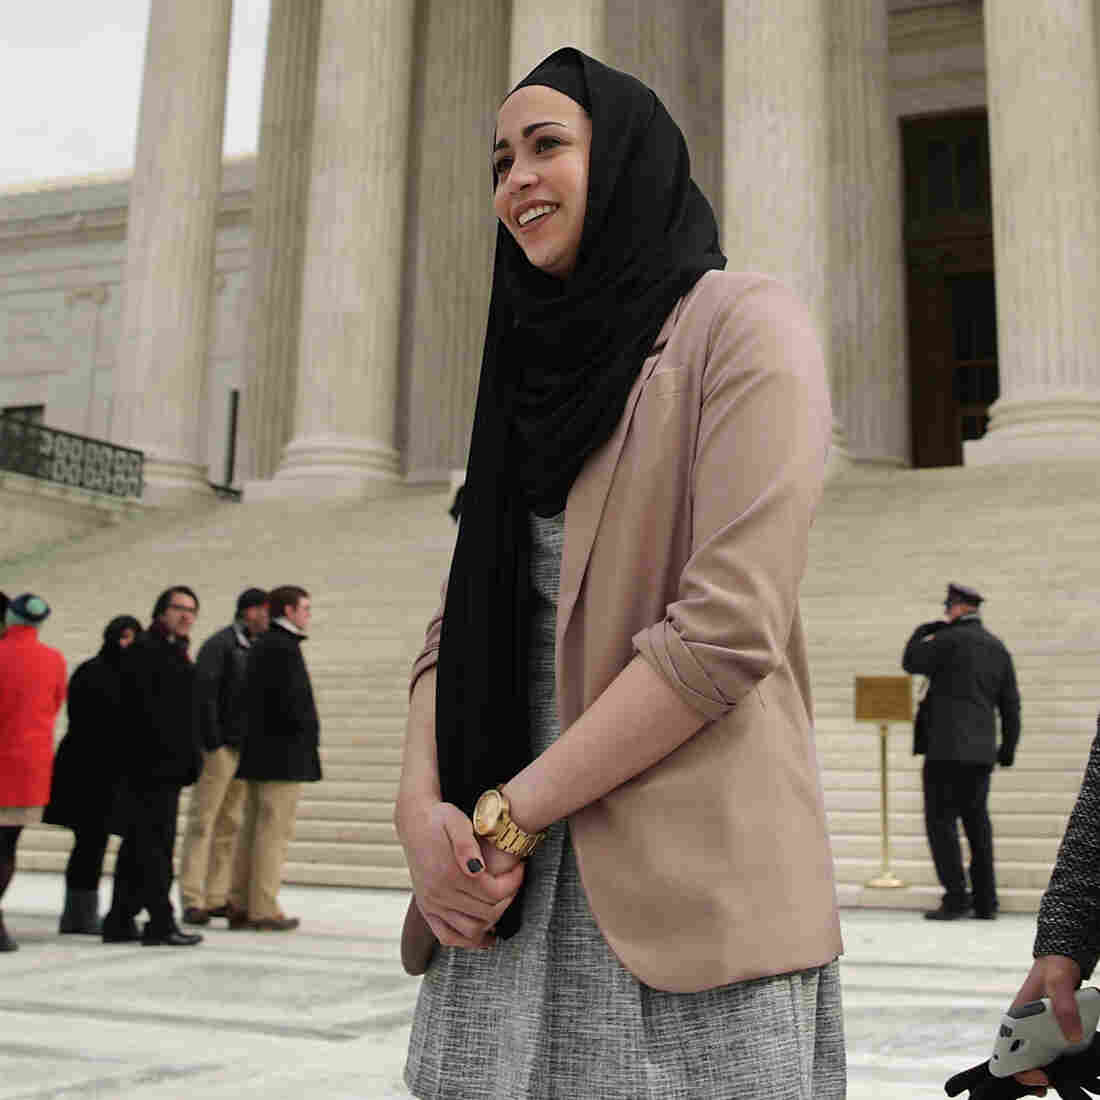 High Court Leans Toward Religious Protection In Headscarf Case